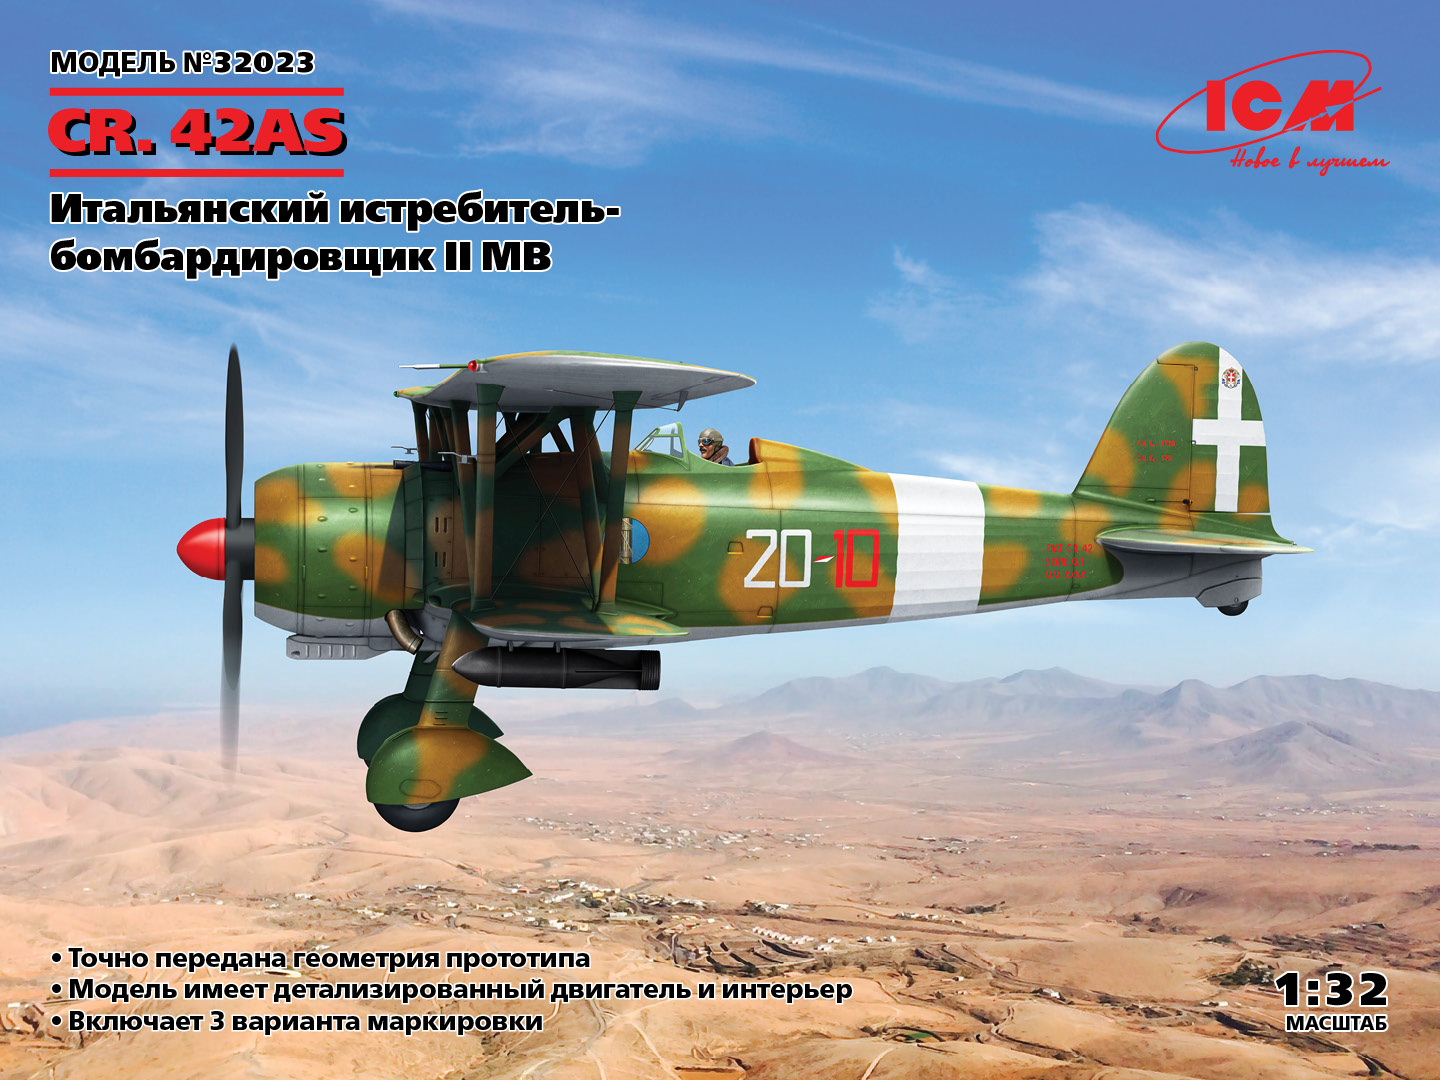 ICM 1/32 CR. 42AS WWII Italian Fighter-Bomber